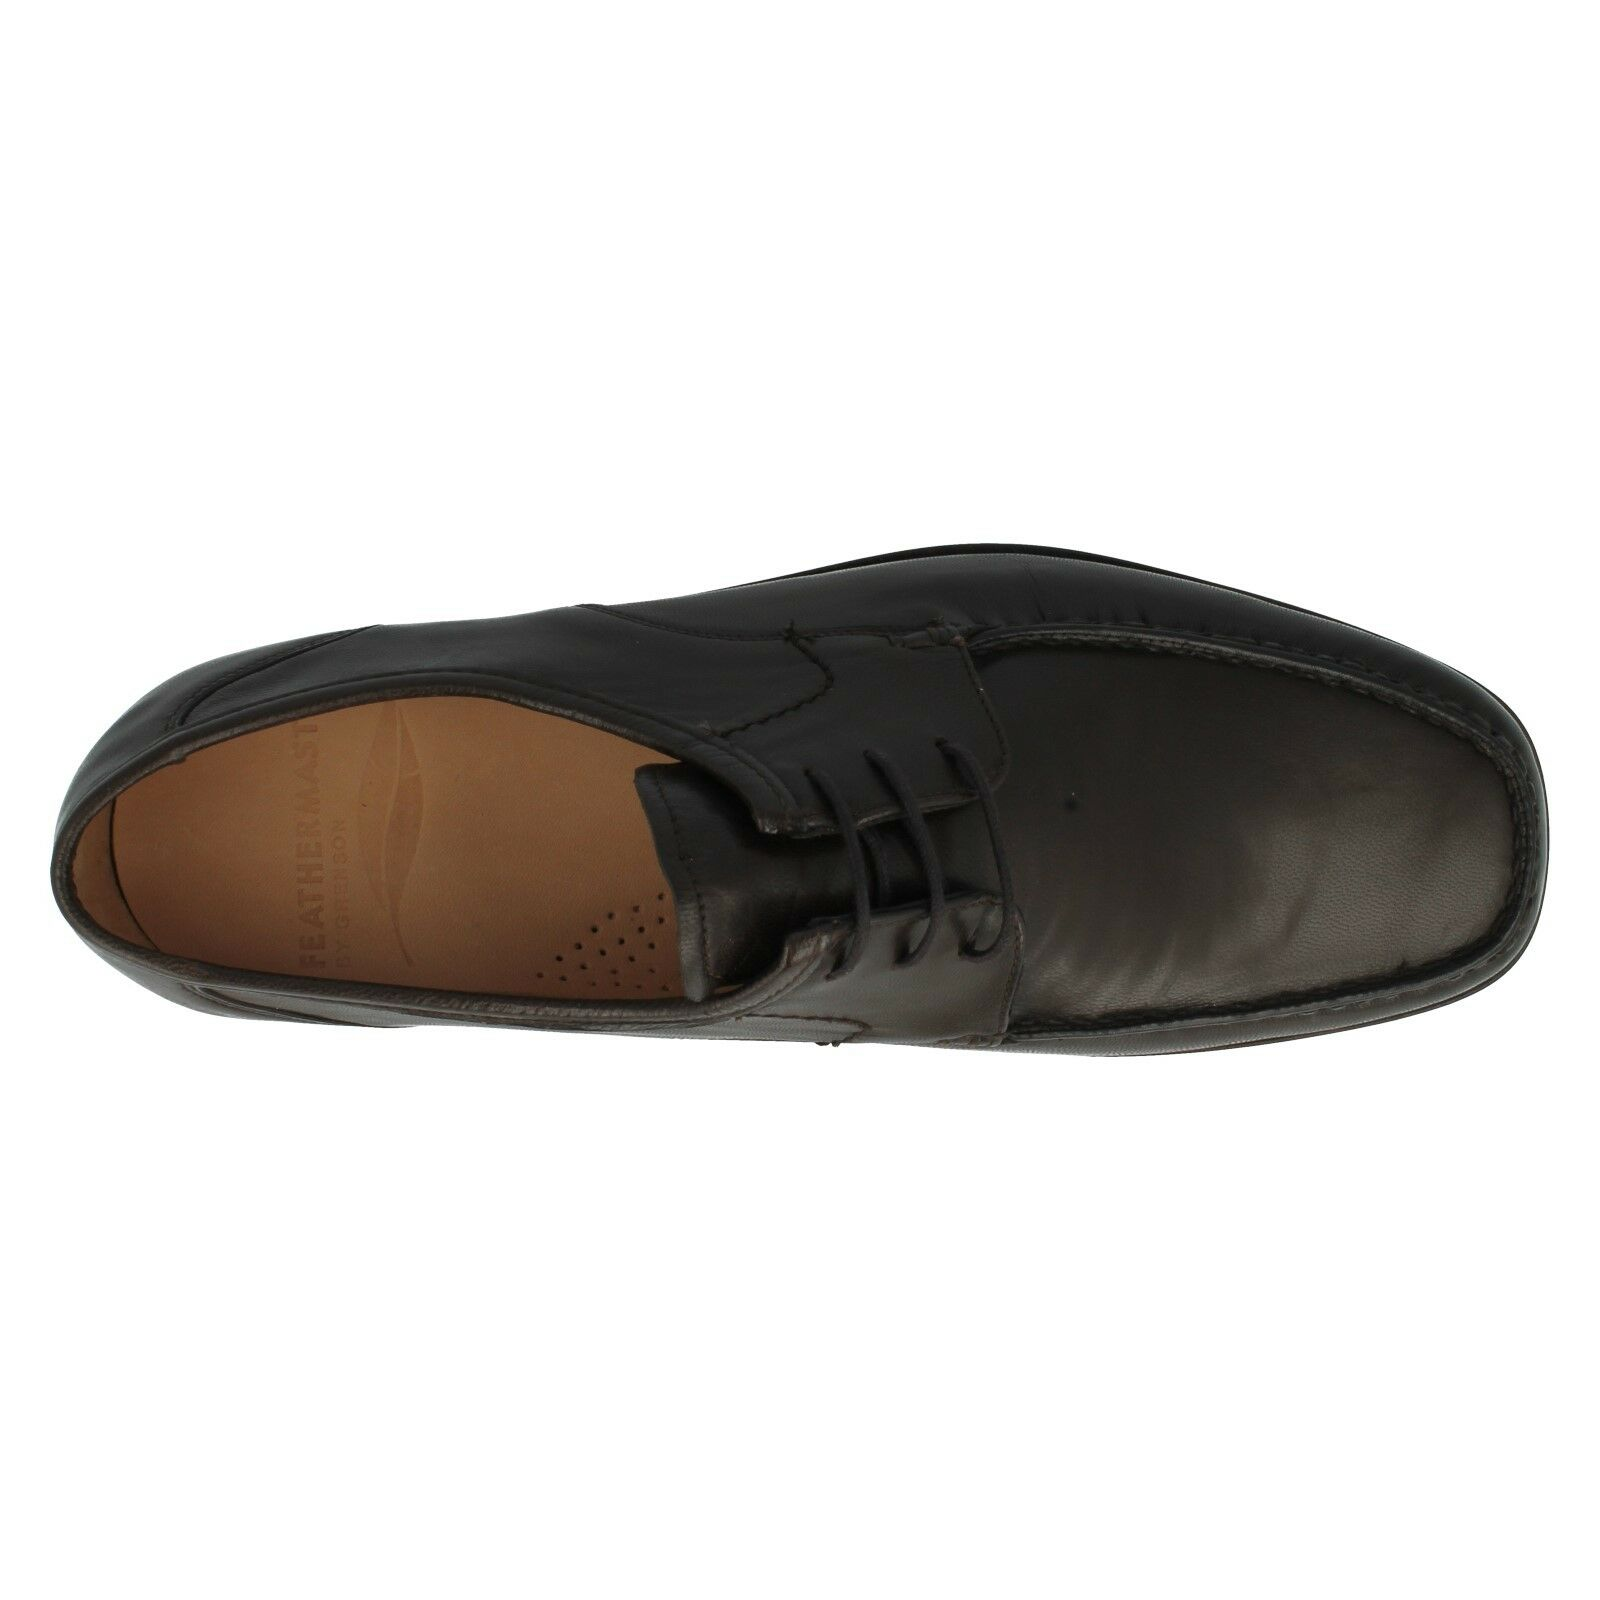 Herren GRENSON GRENSON GRENSON SMART BROWN LEATHER LACE UP CASUAL Schuhe 9673-29 UK SIZE 8.5 9 11 9a52c9